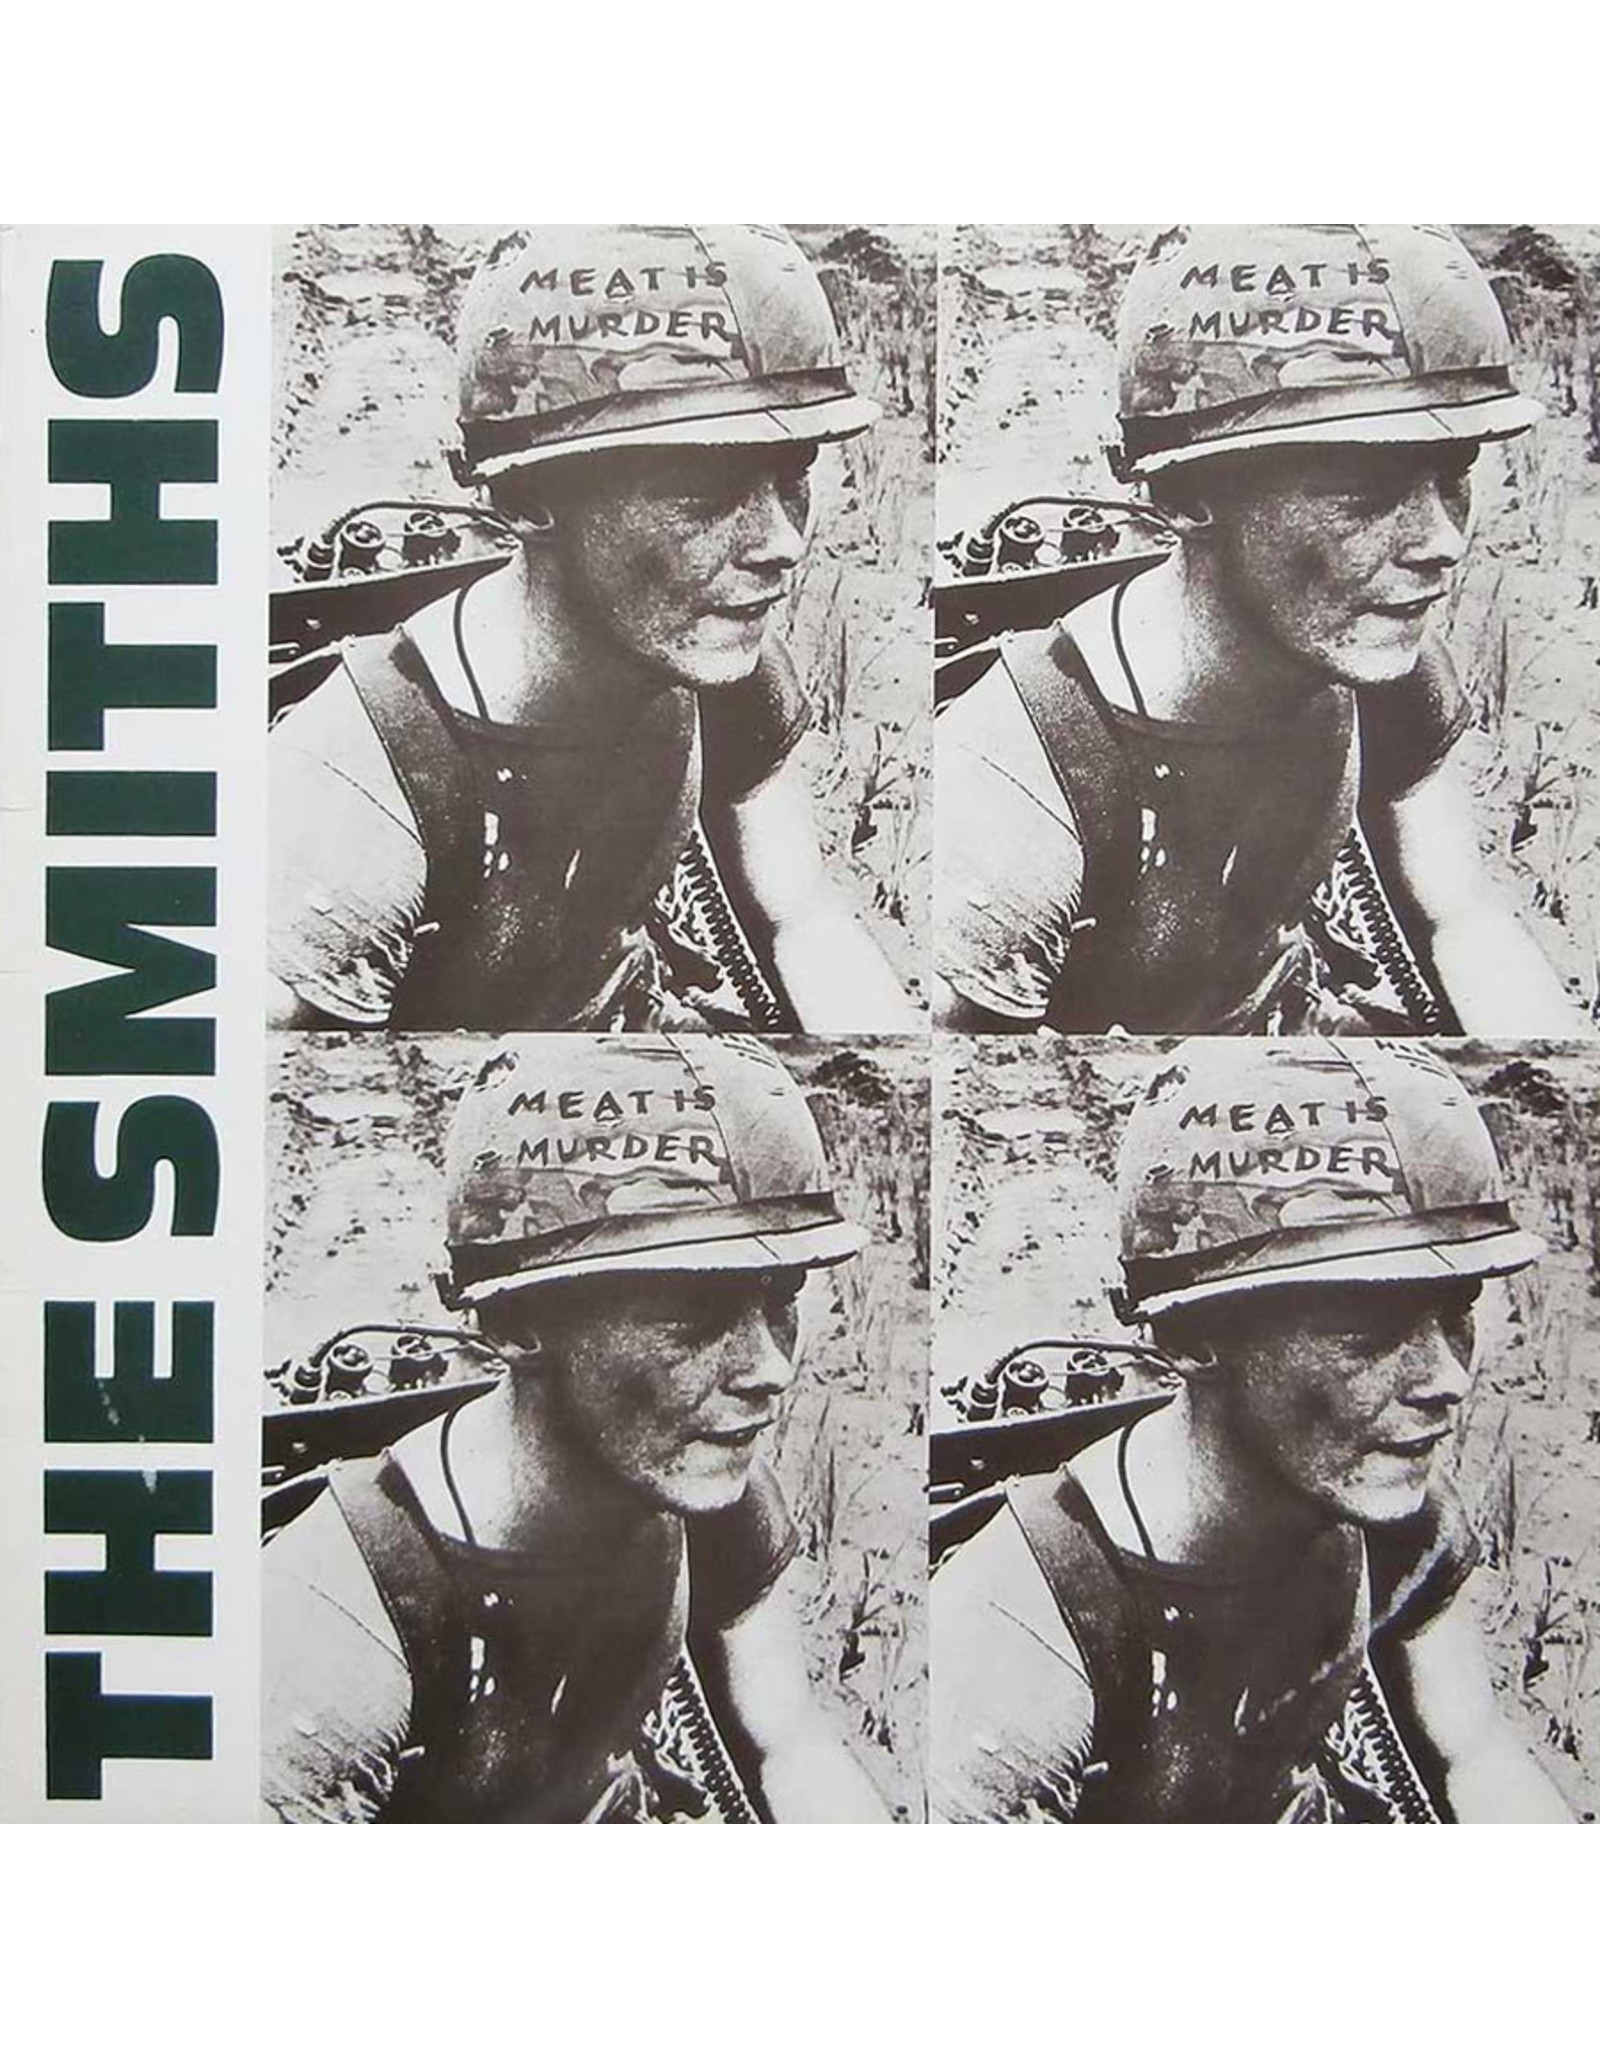 AMS AMS LP Smiths Meat Is Murder